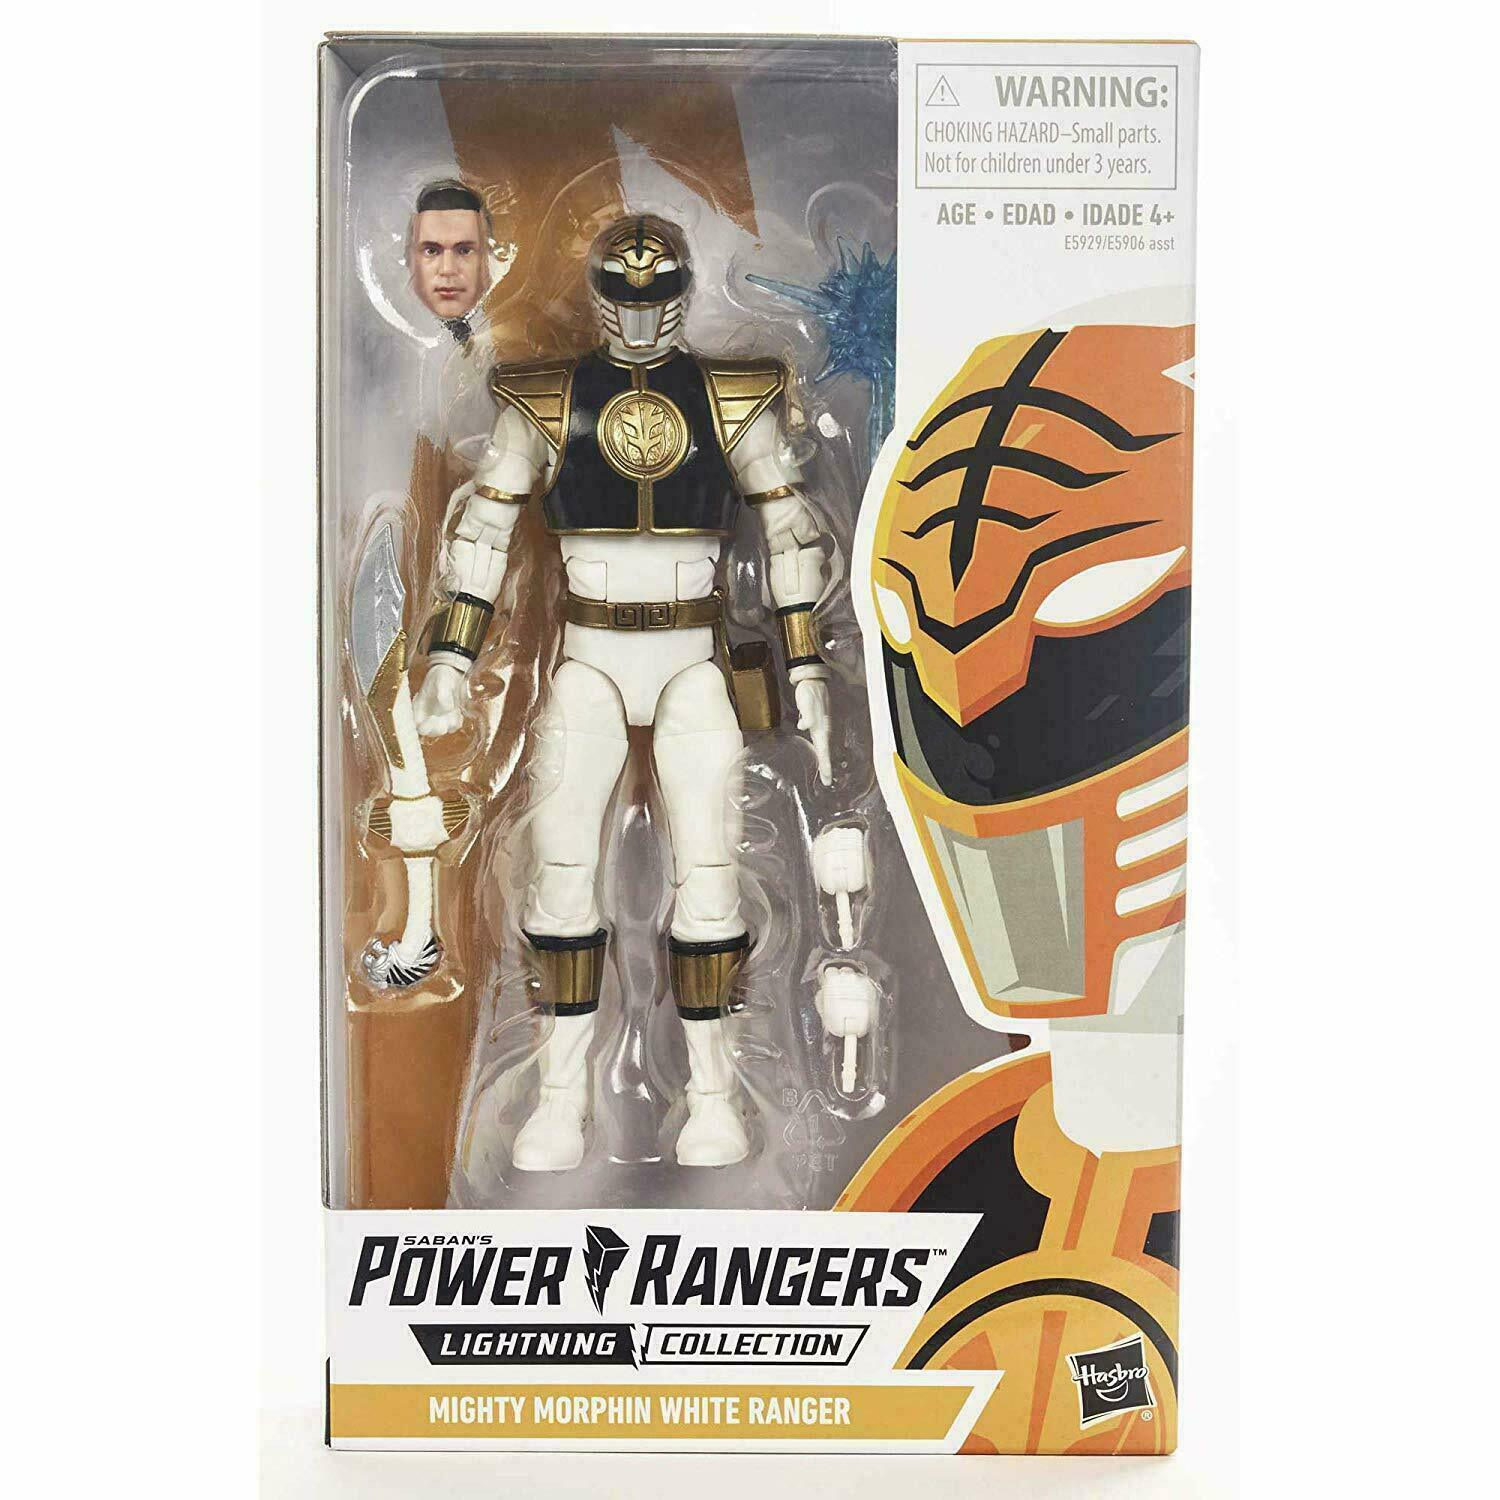 Power Rangers NEW White Ranger Lightning Collection 6-Inch Action Figure Toy